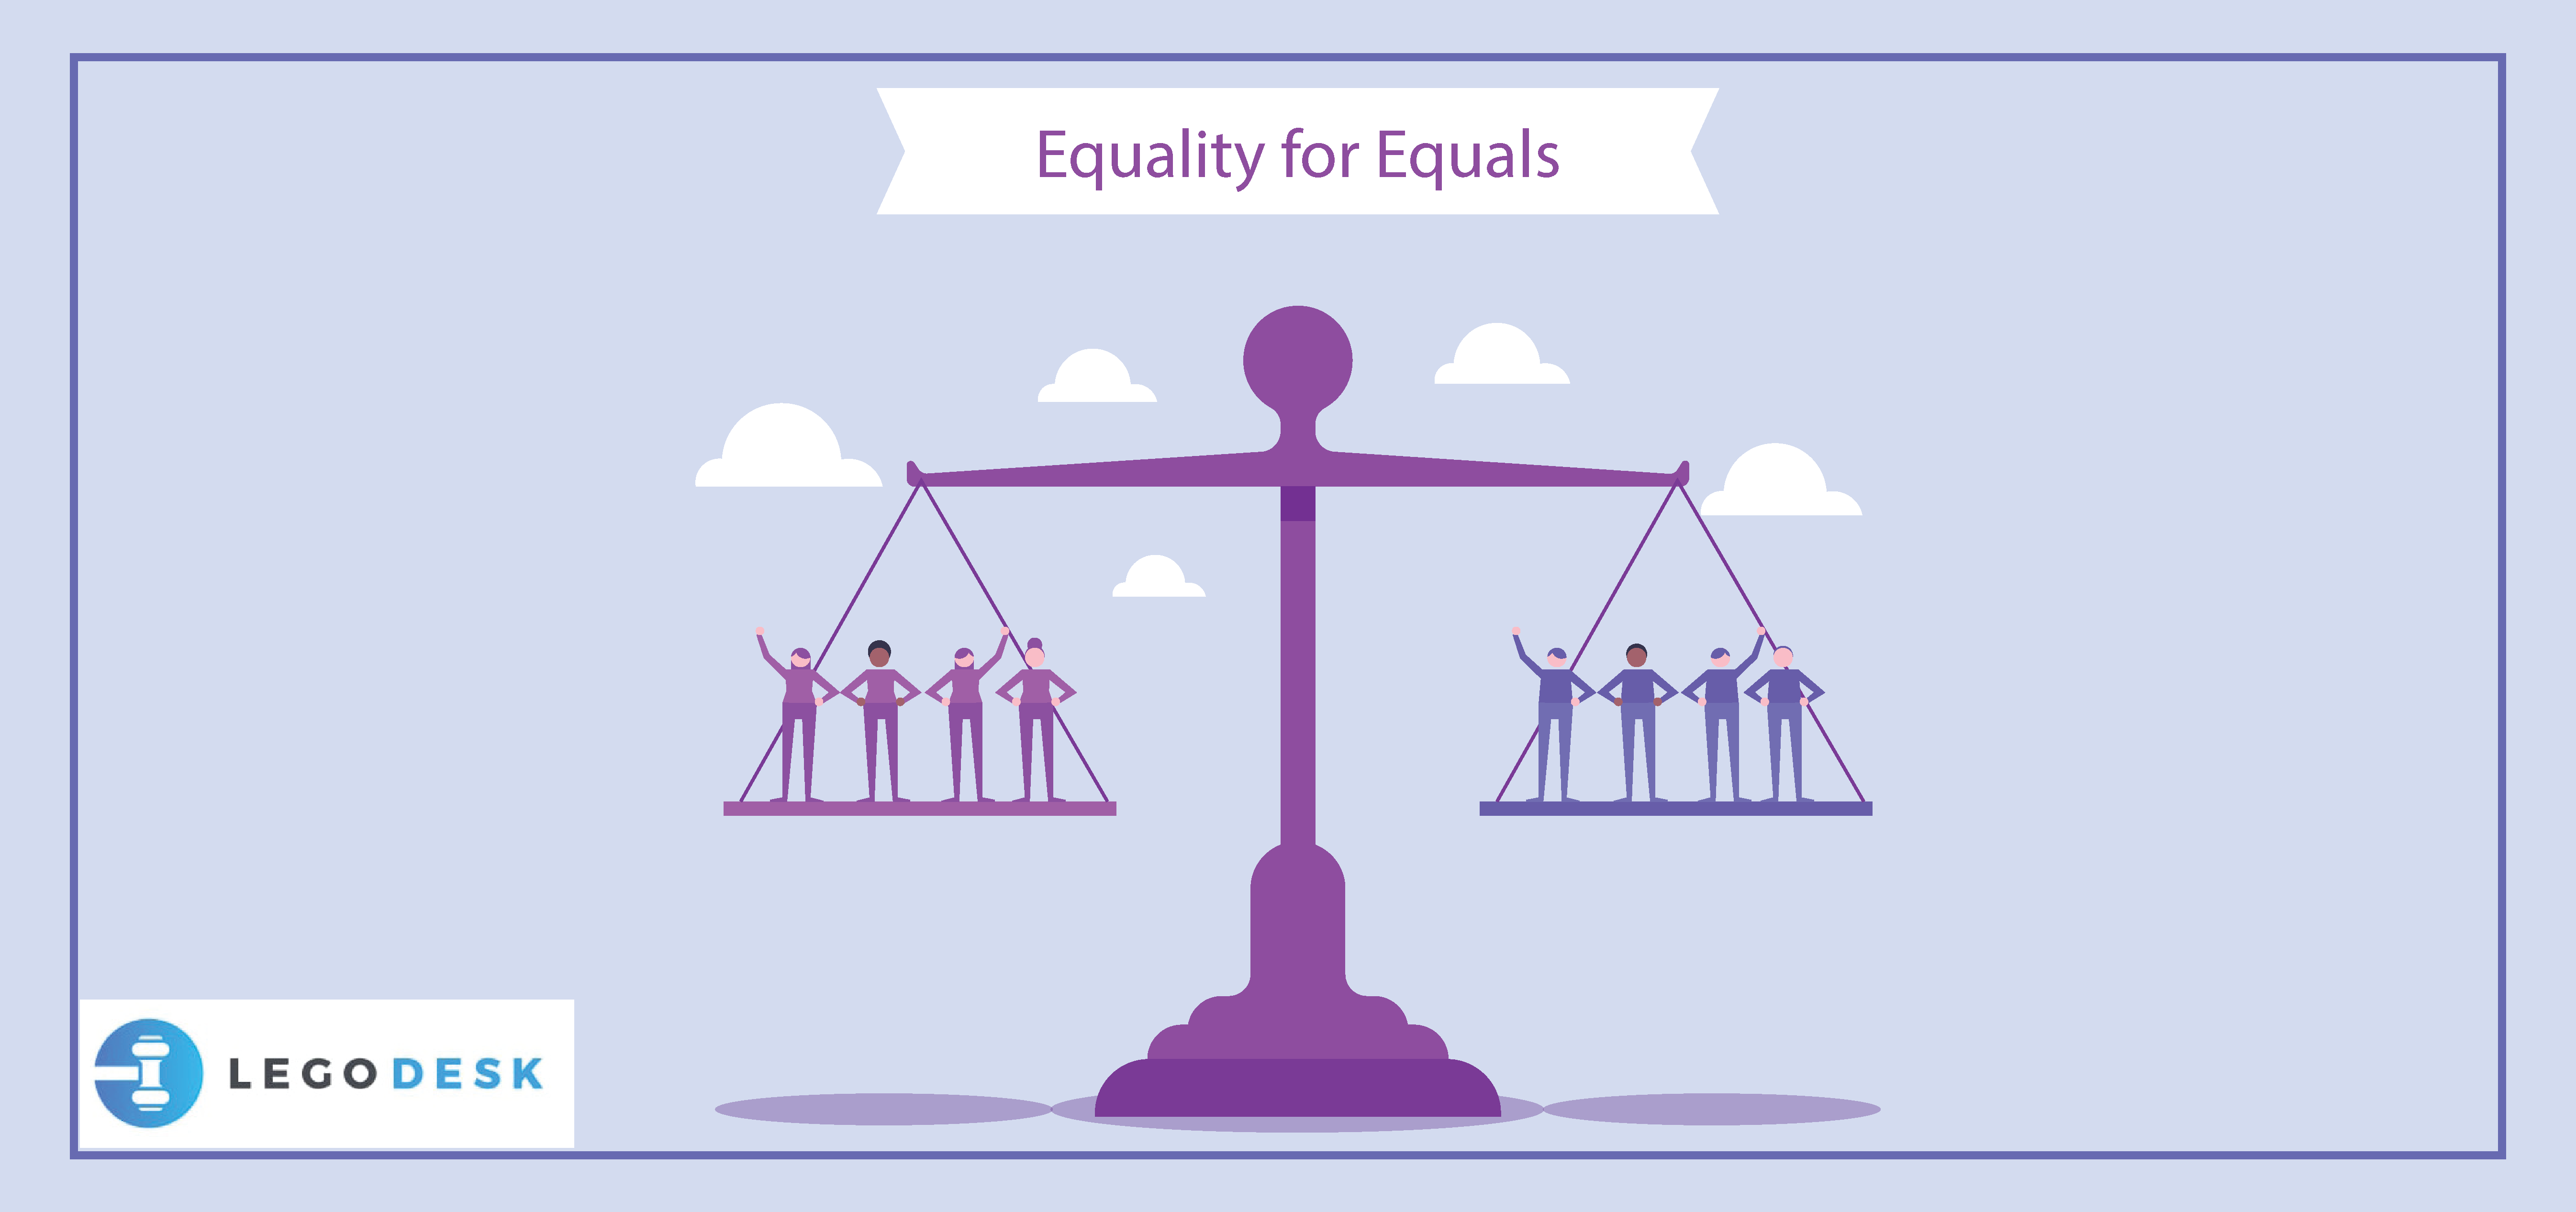 Equality for Equals